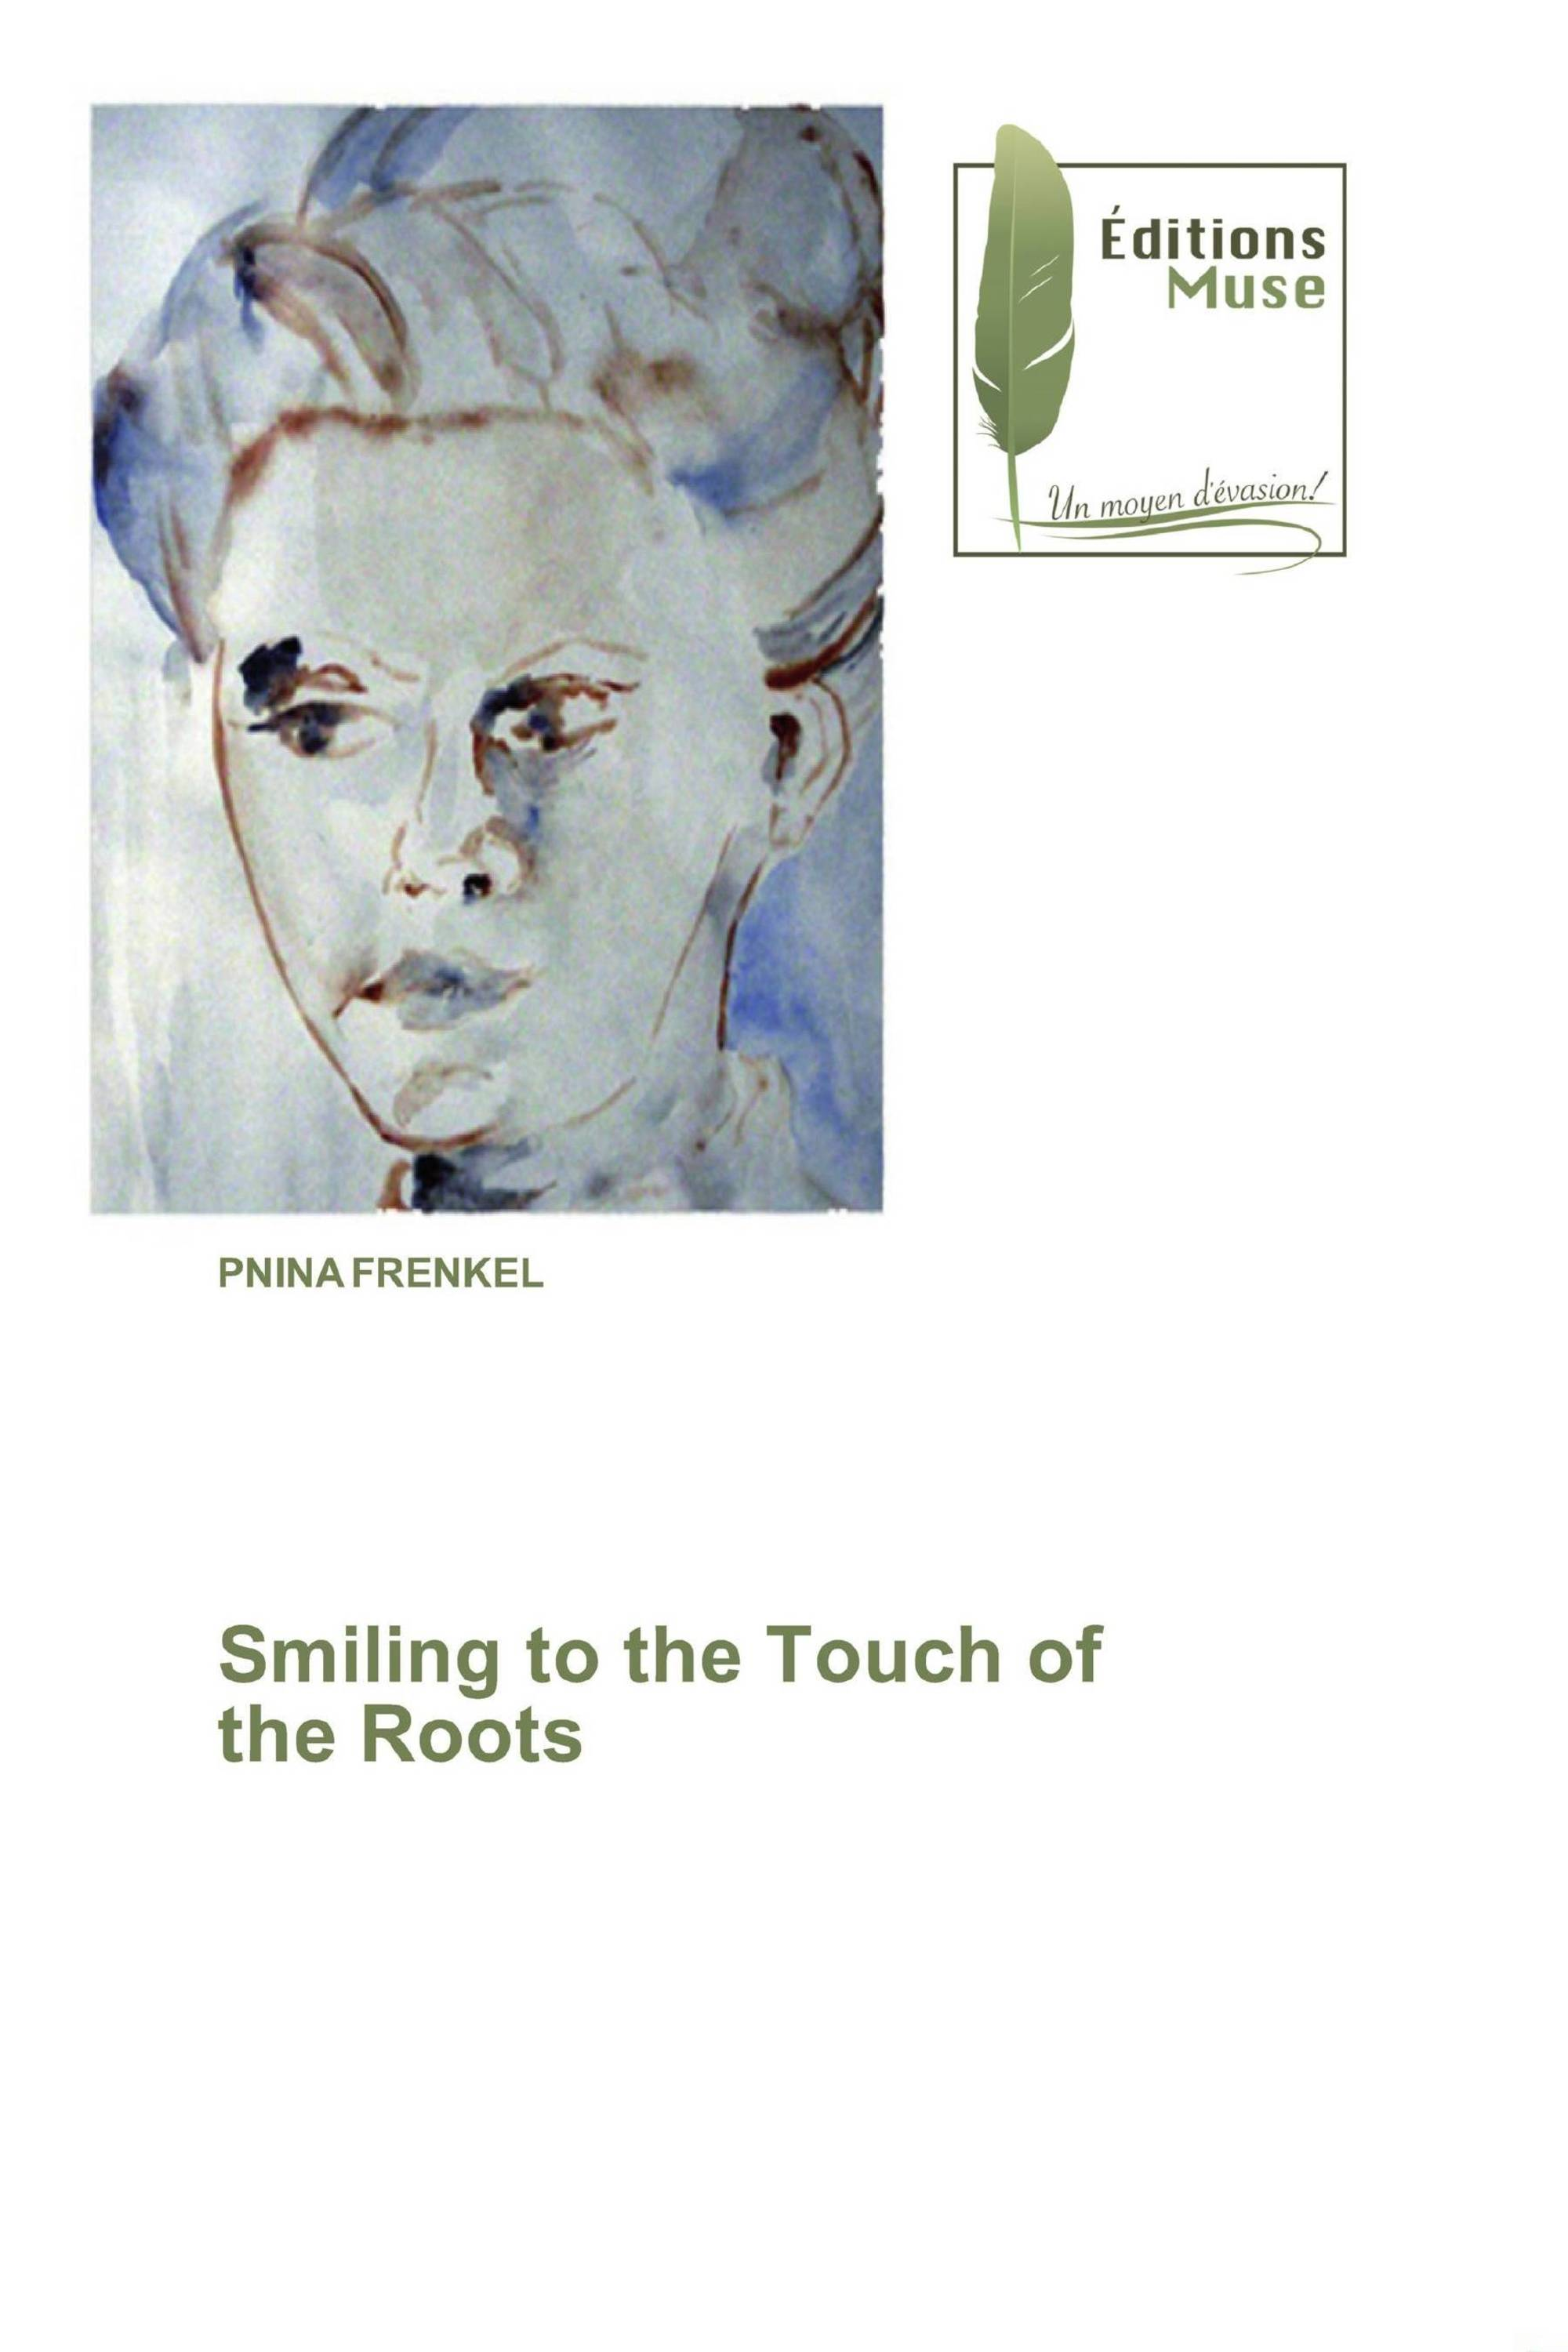 Smiling to the Touch of the Roots